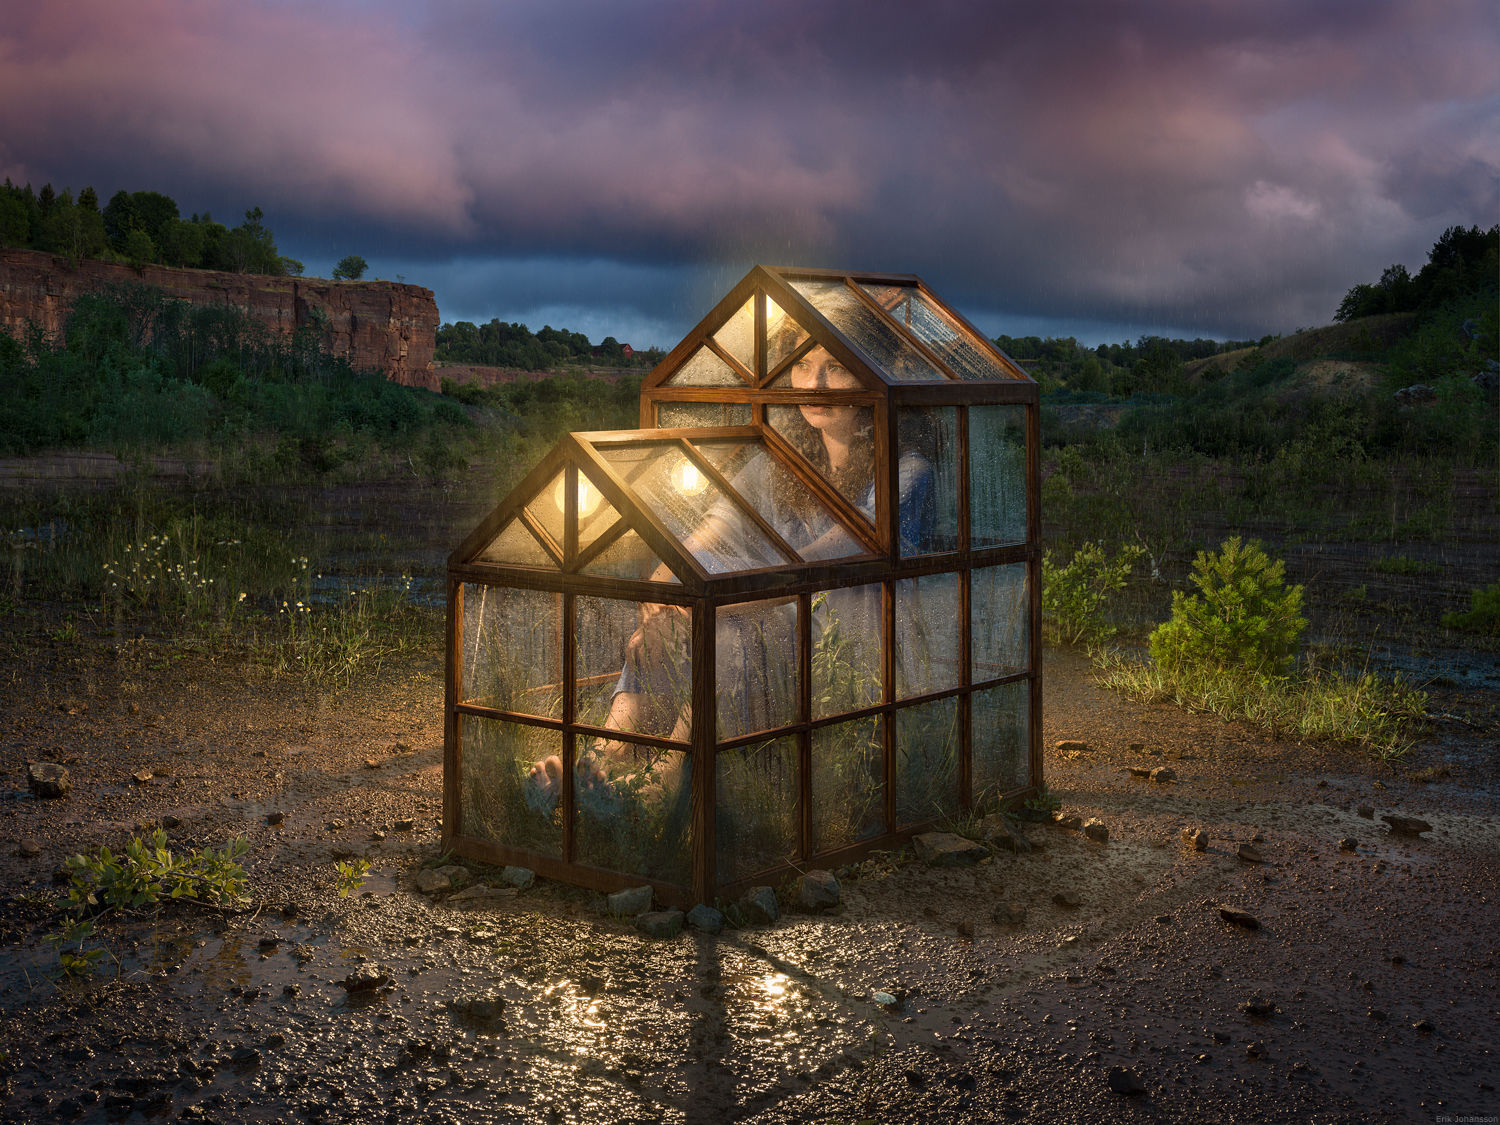 'Comfort Zone' Erik Johansson c/o AGENT MOLLY & CO